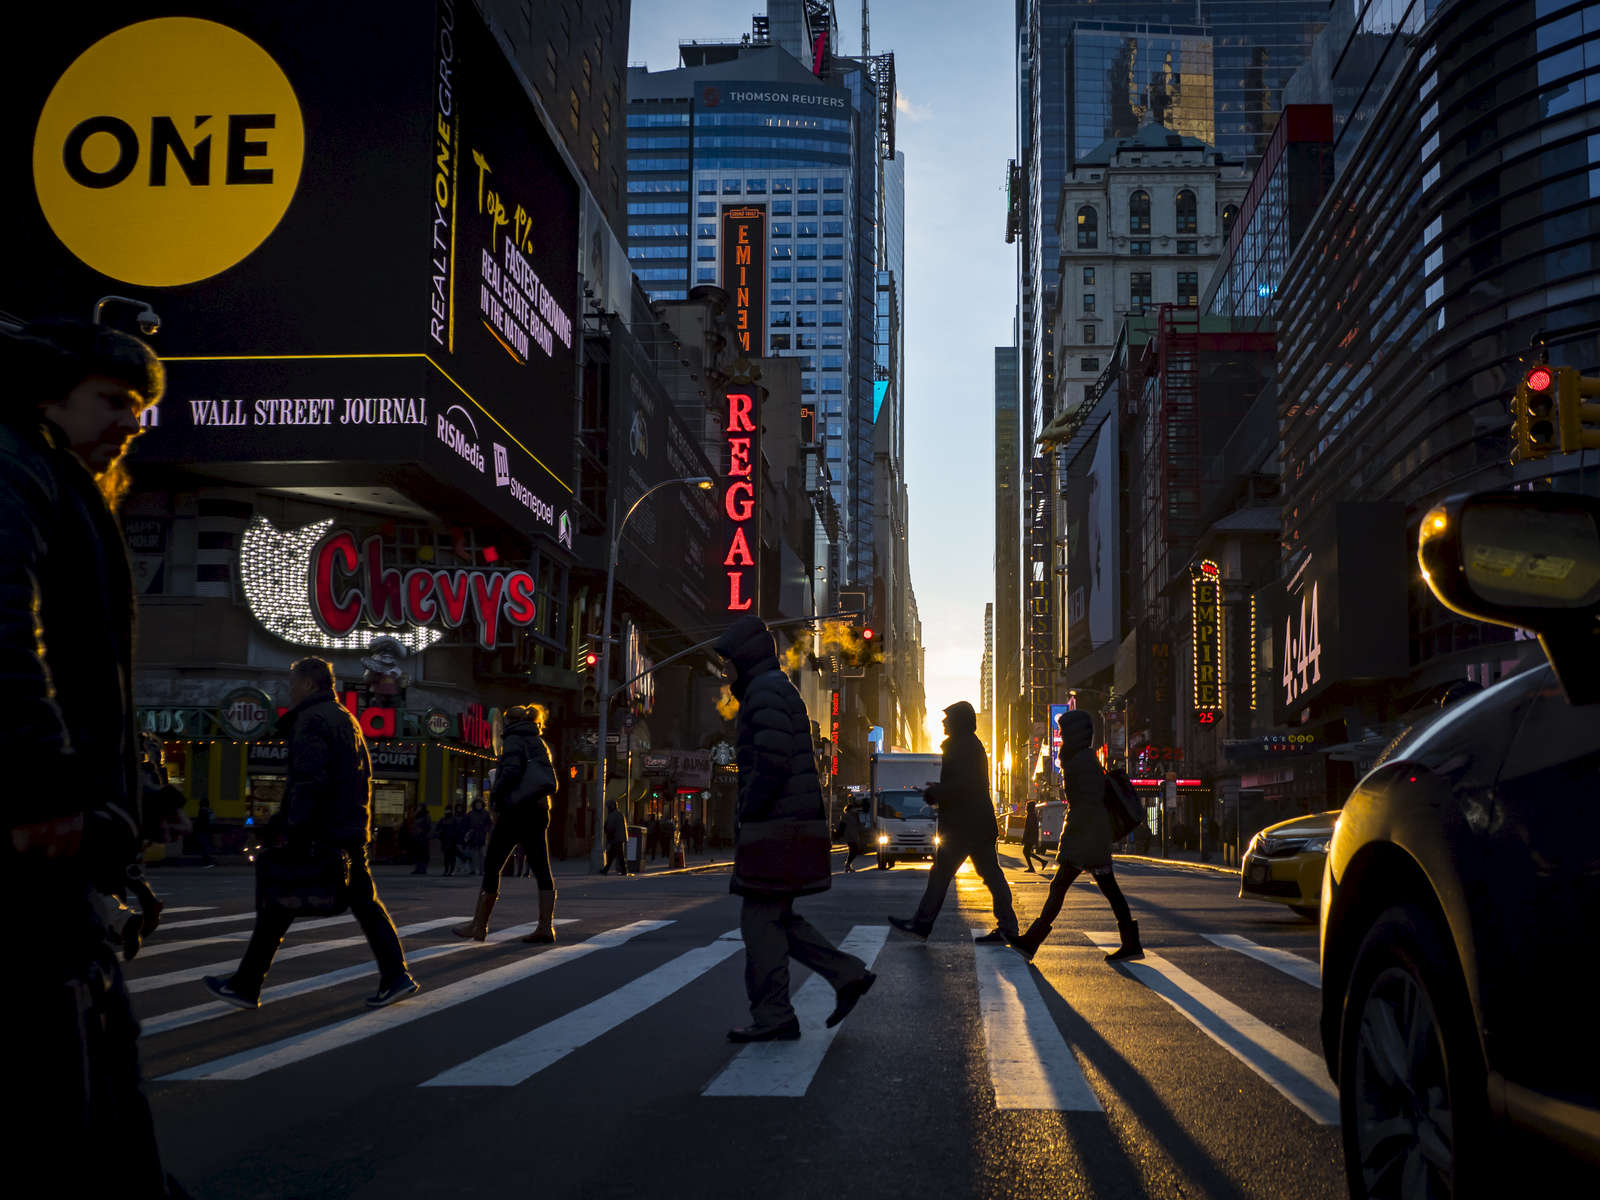 Pedestrians were silhouetted as they cross 42nd Street and 8th Avenue in Midtown, Manhattan on Thursday, January 25, 2018.